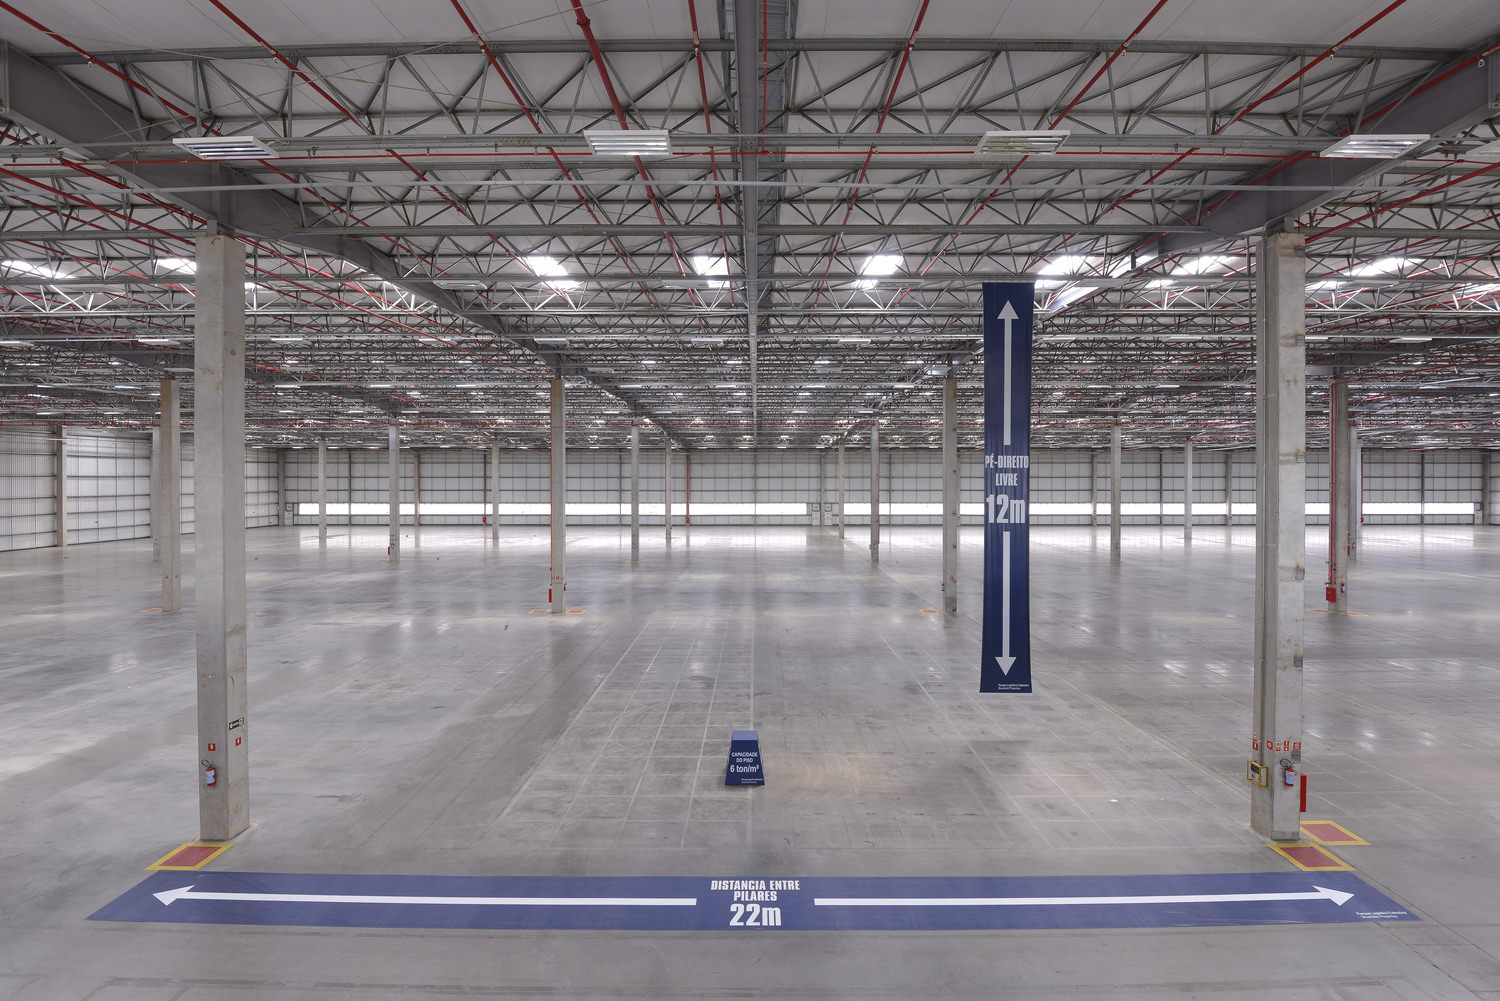 Interior of a parking area for trucks. There are signs signaling the space is 22m wide and 12m tall.